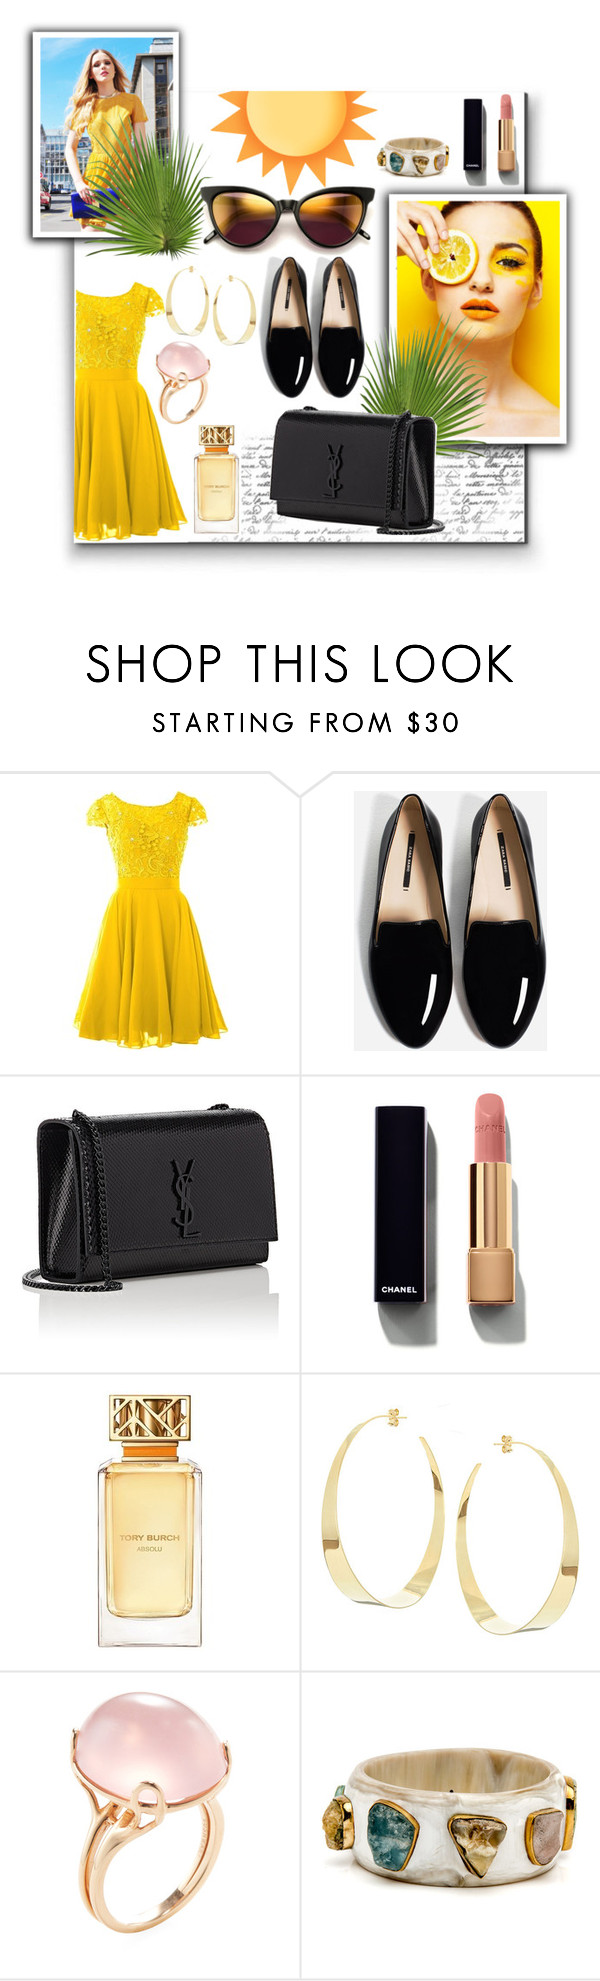 """yellow sun"" by siristorh ❤ liked on Polyvore featuring Yves Saint Laurent, Chanel, Tory Burch, Lana and Goshwara"